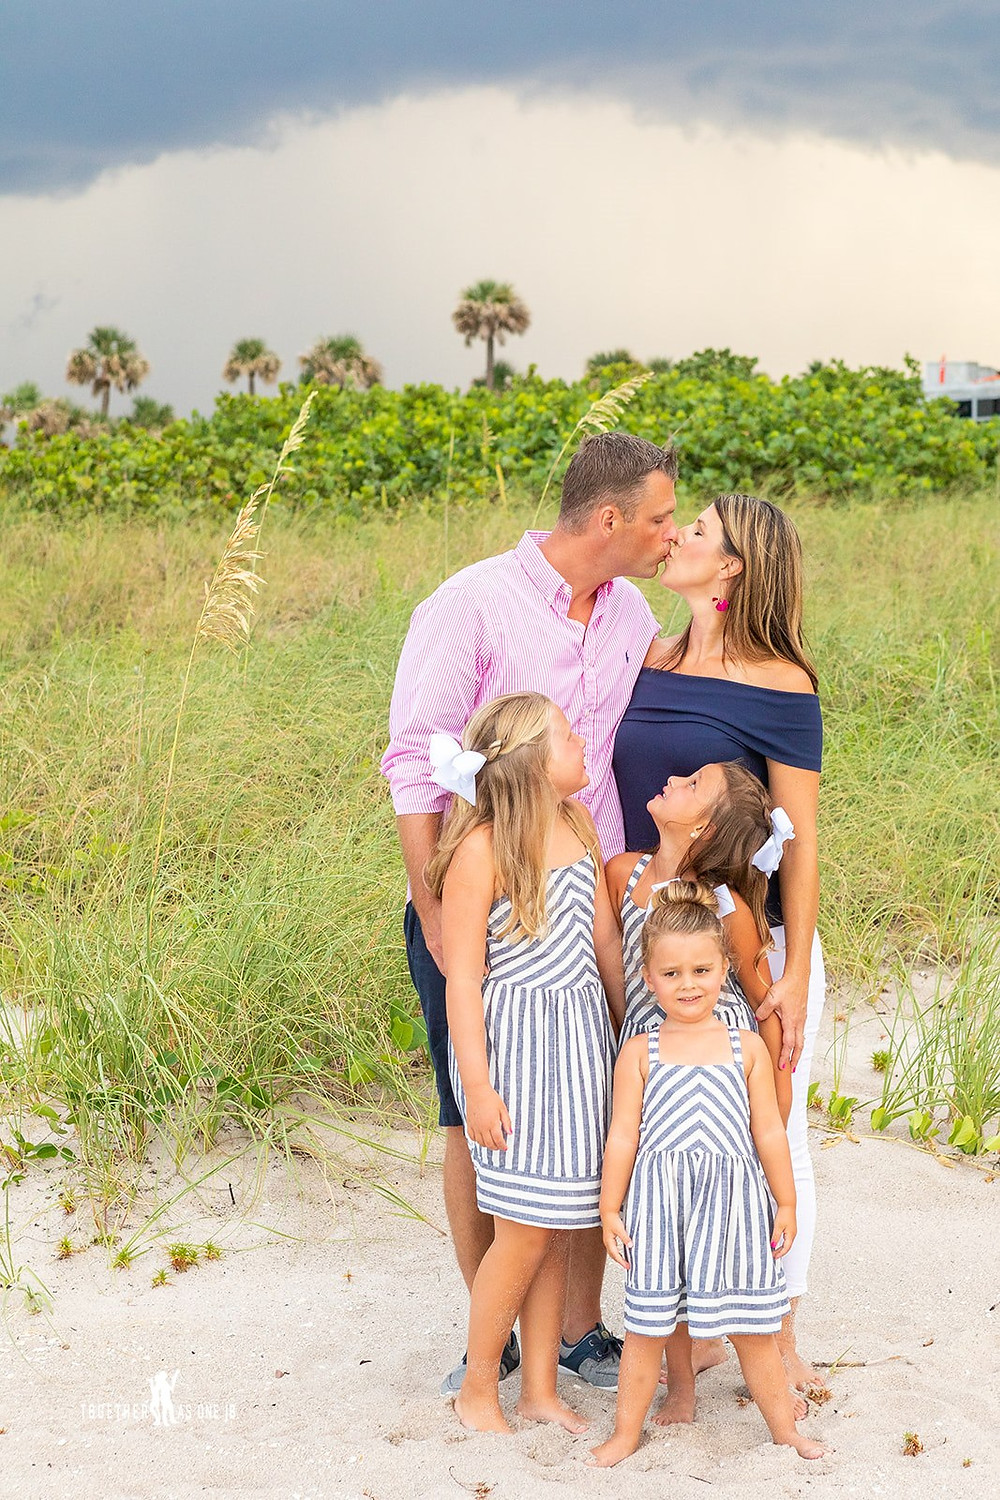 Cincinnati wedding photographer captures image of family posing for a picture on the beach.